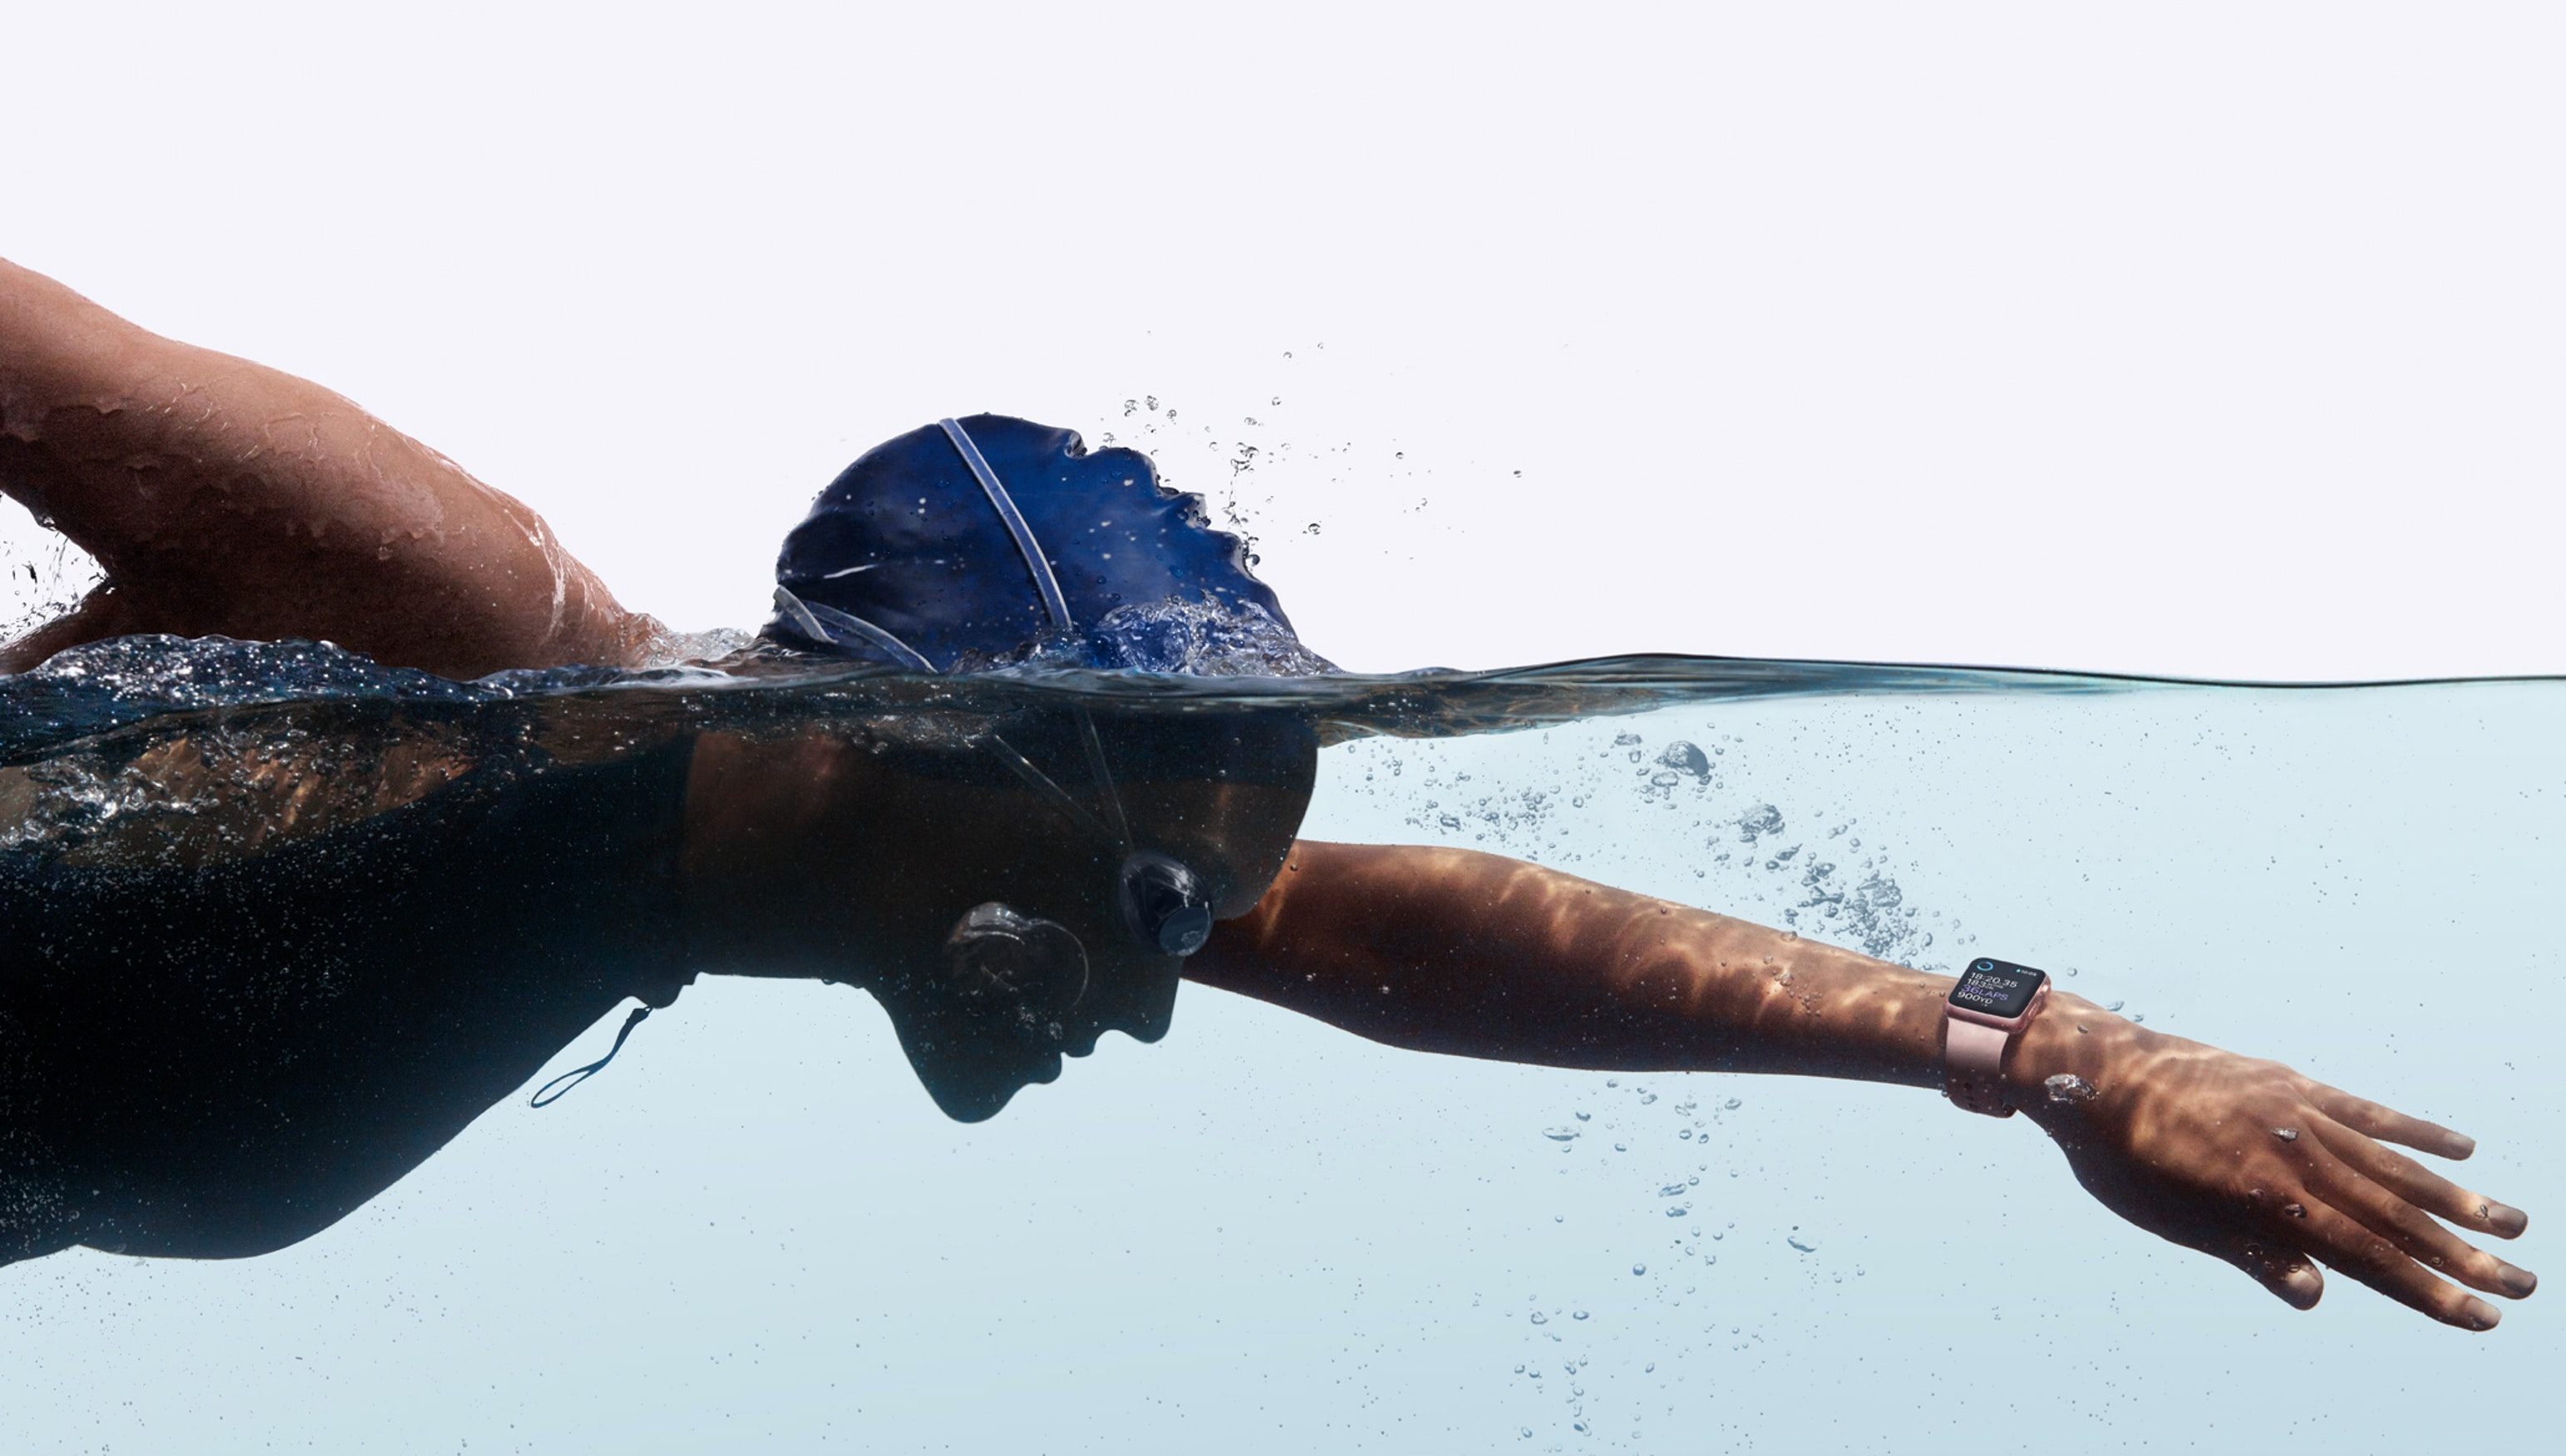 The recently-released Apple Watch 2 can measure heart rates under water.